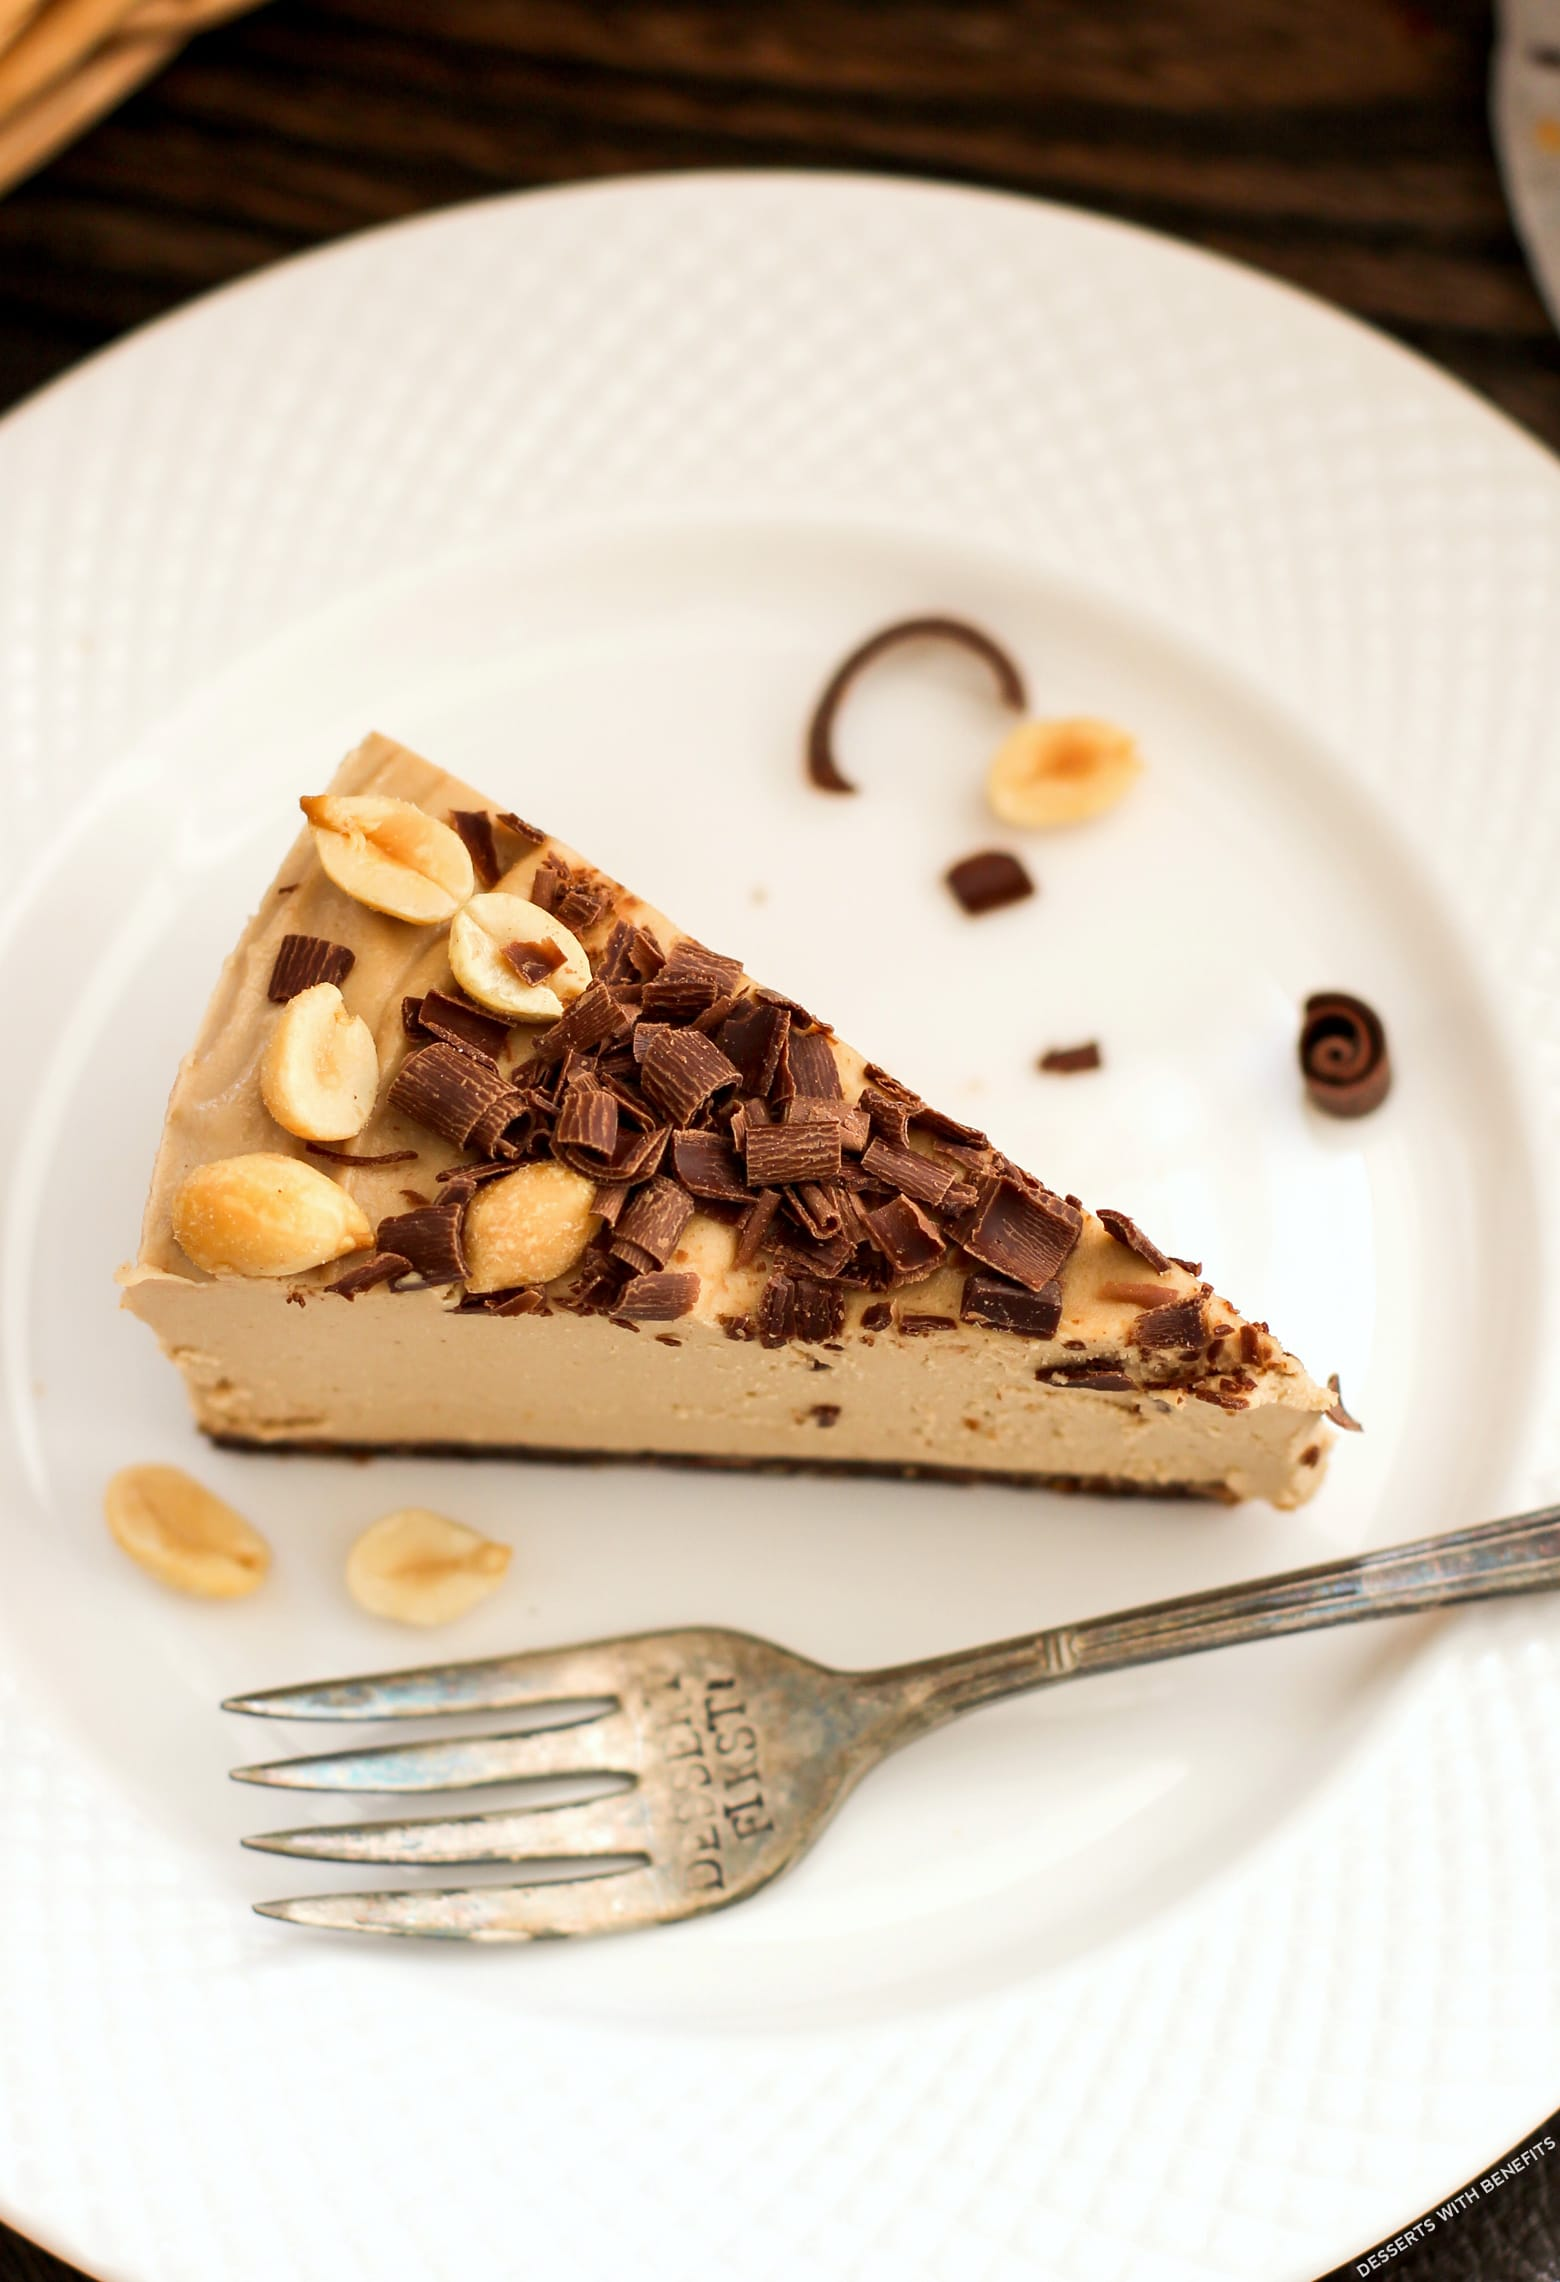 Healthy Chocolate Peanut Butter Raw Cheesecake (no bake, low sugar, high protein, high fiber, gluten free, dairy free, vegan) - Healthy Dessert Recipes at Desserts with Benefits